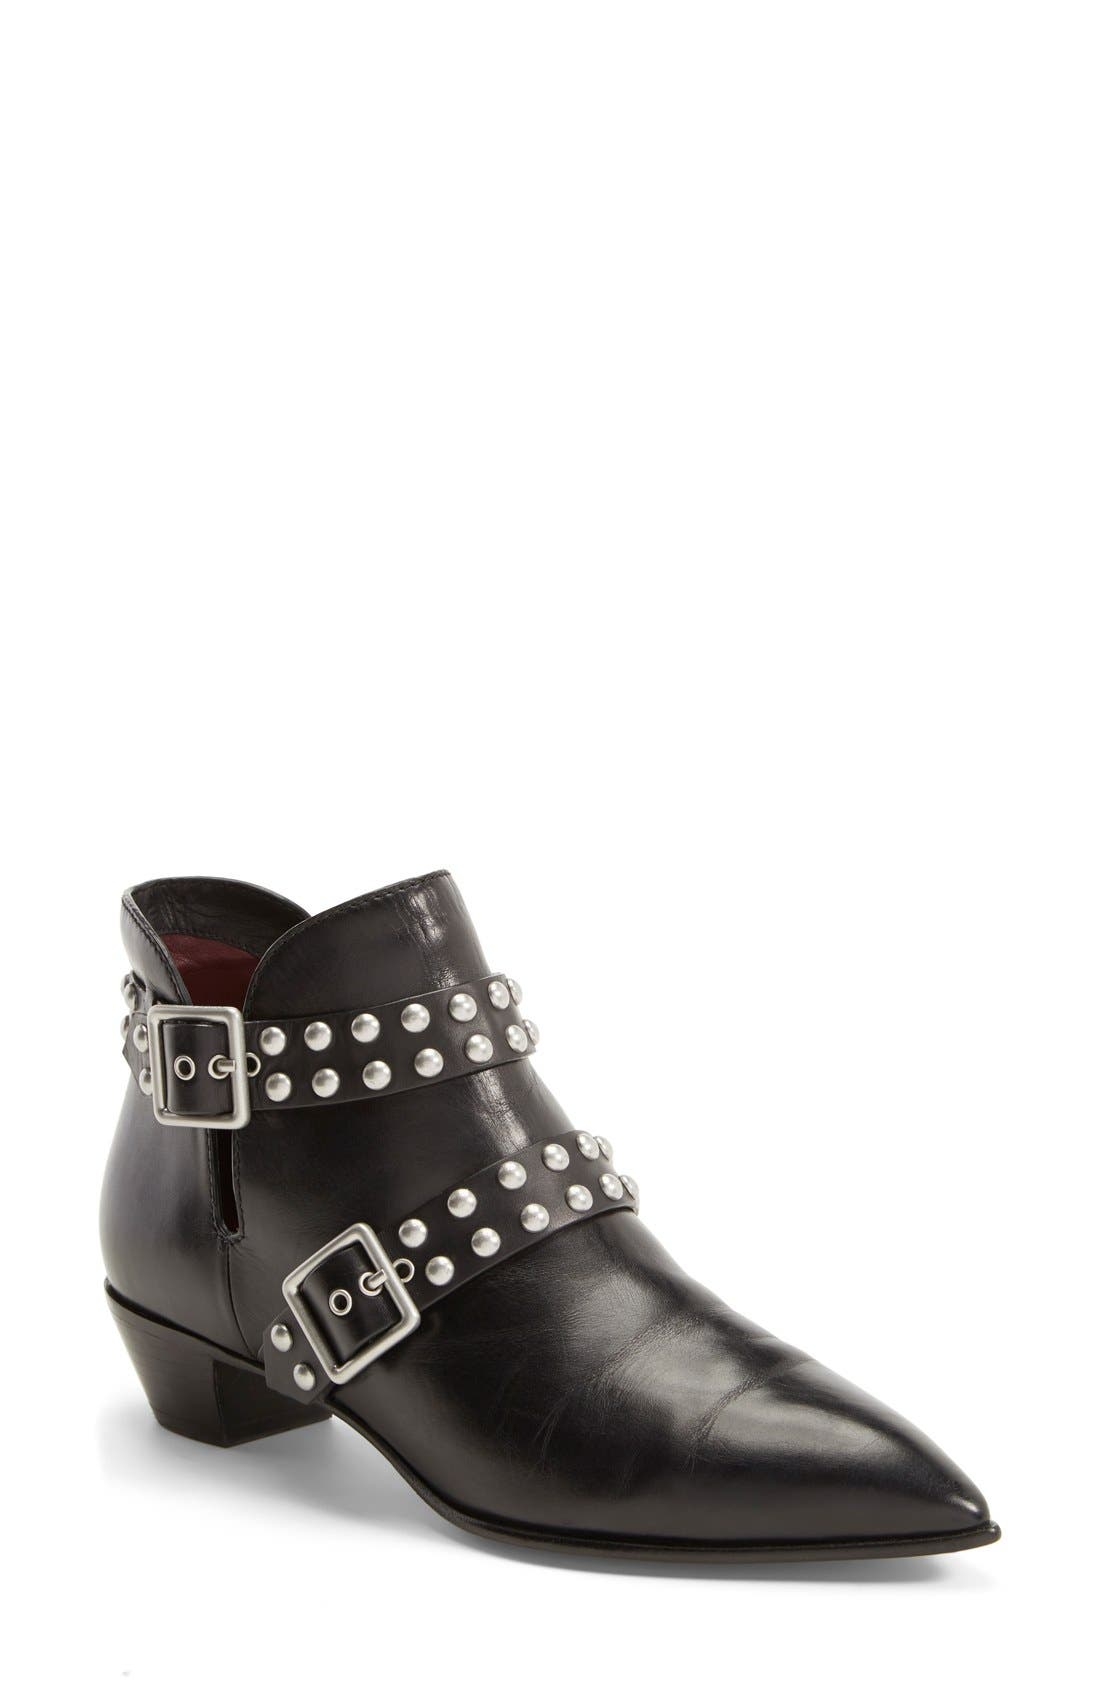 MARC BY MARC JACOBS 'Carroll' Studded Leather Pointy Toe Ankle Boot, Main, color, 001